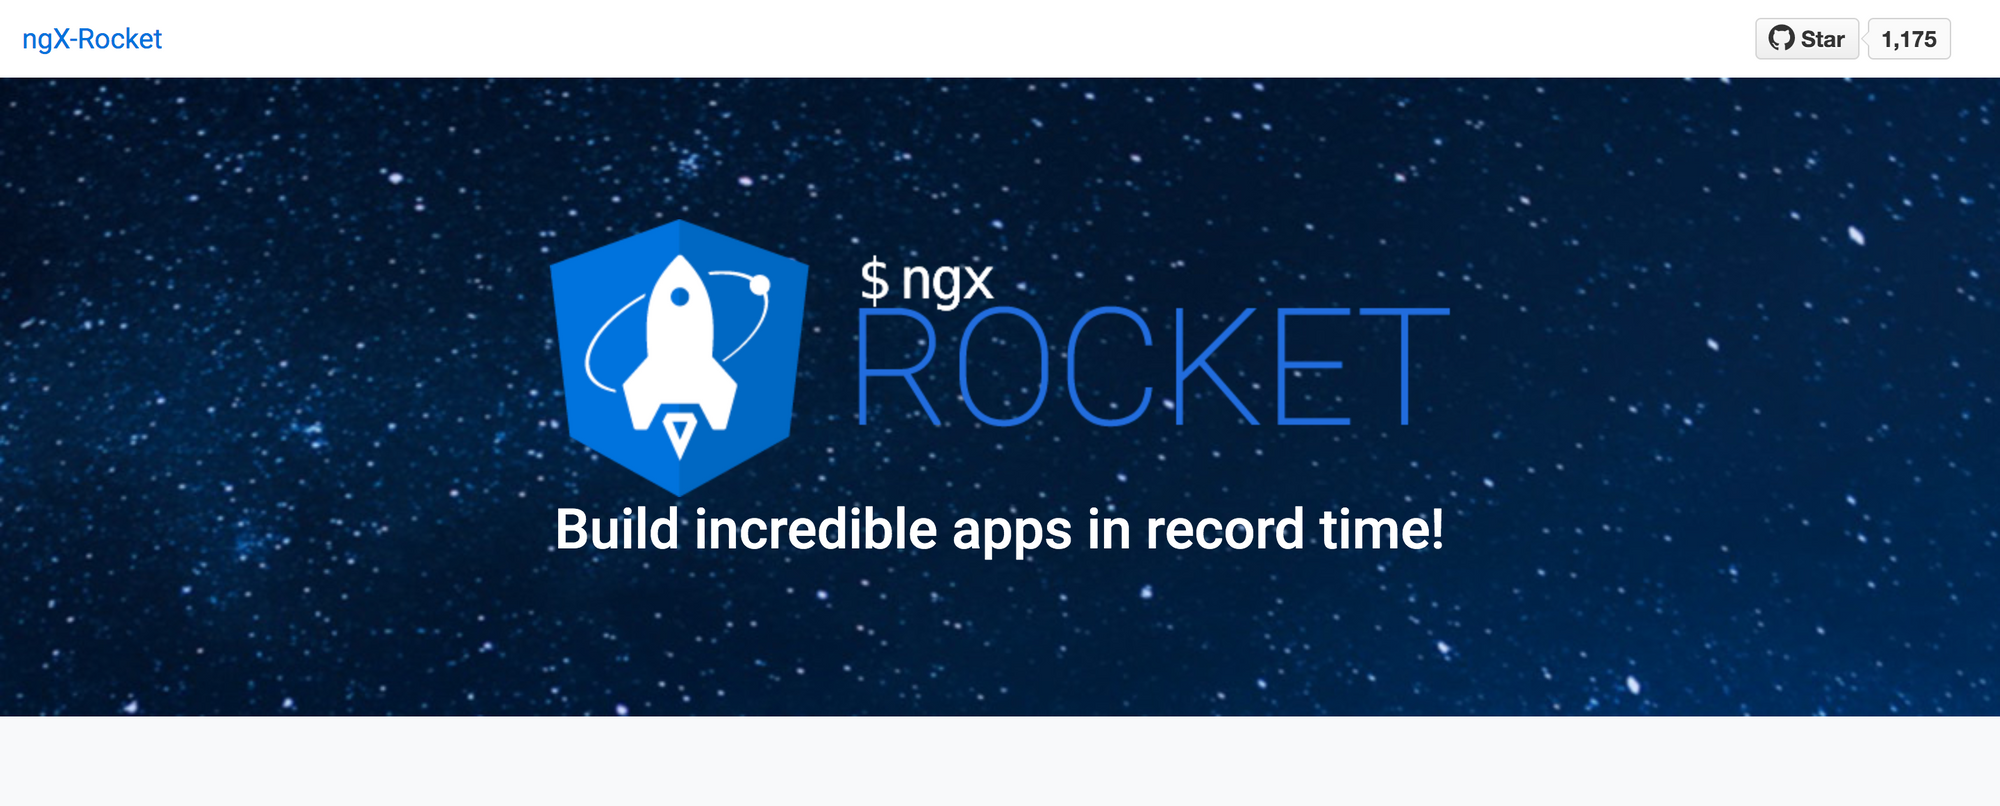 NGX-Rocket - Angular